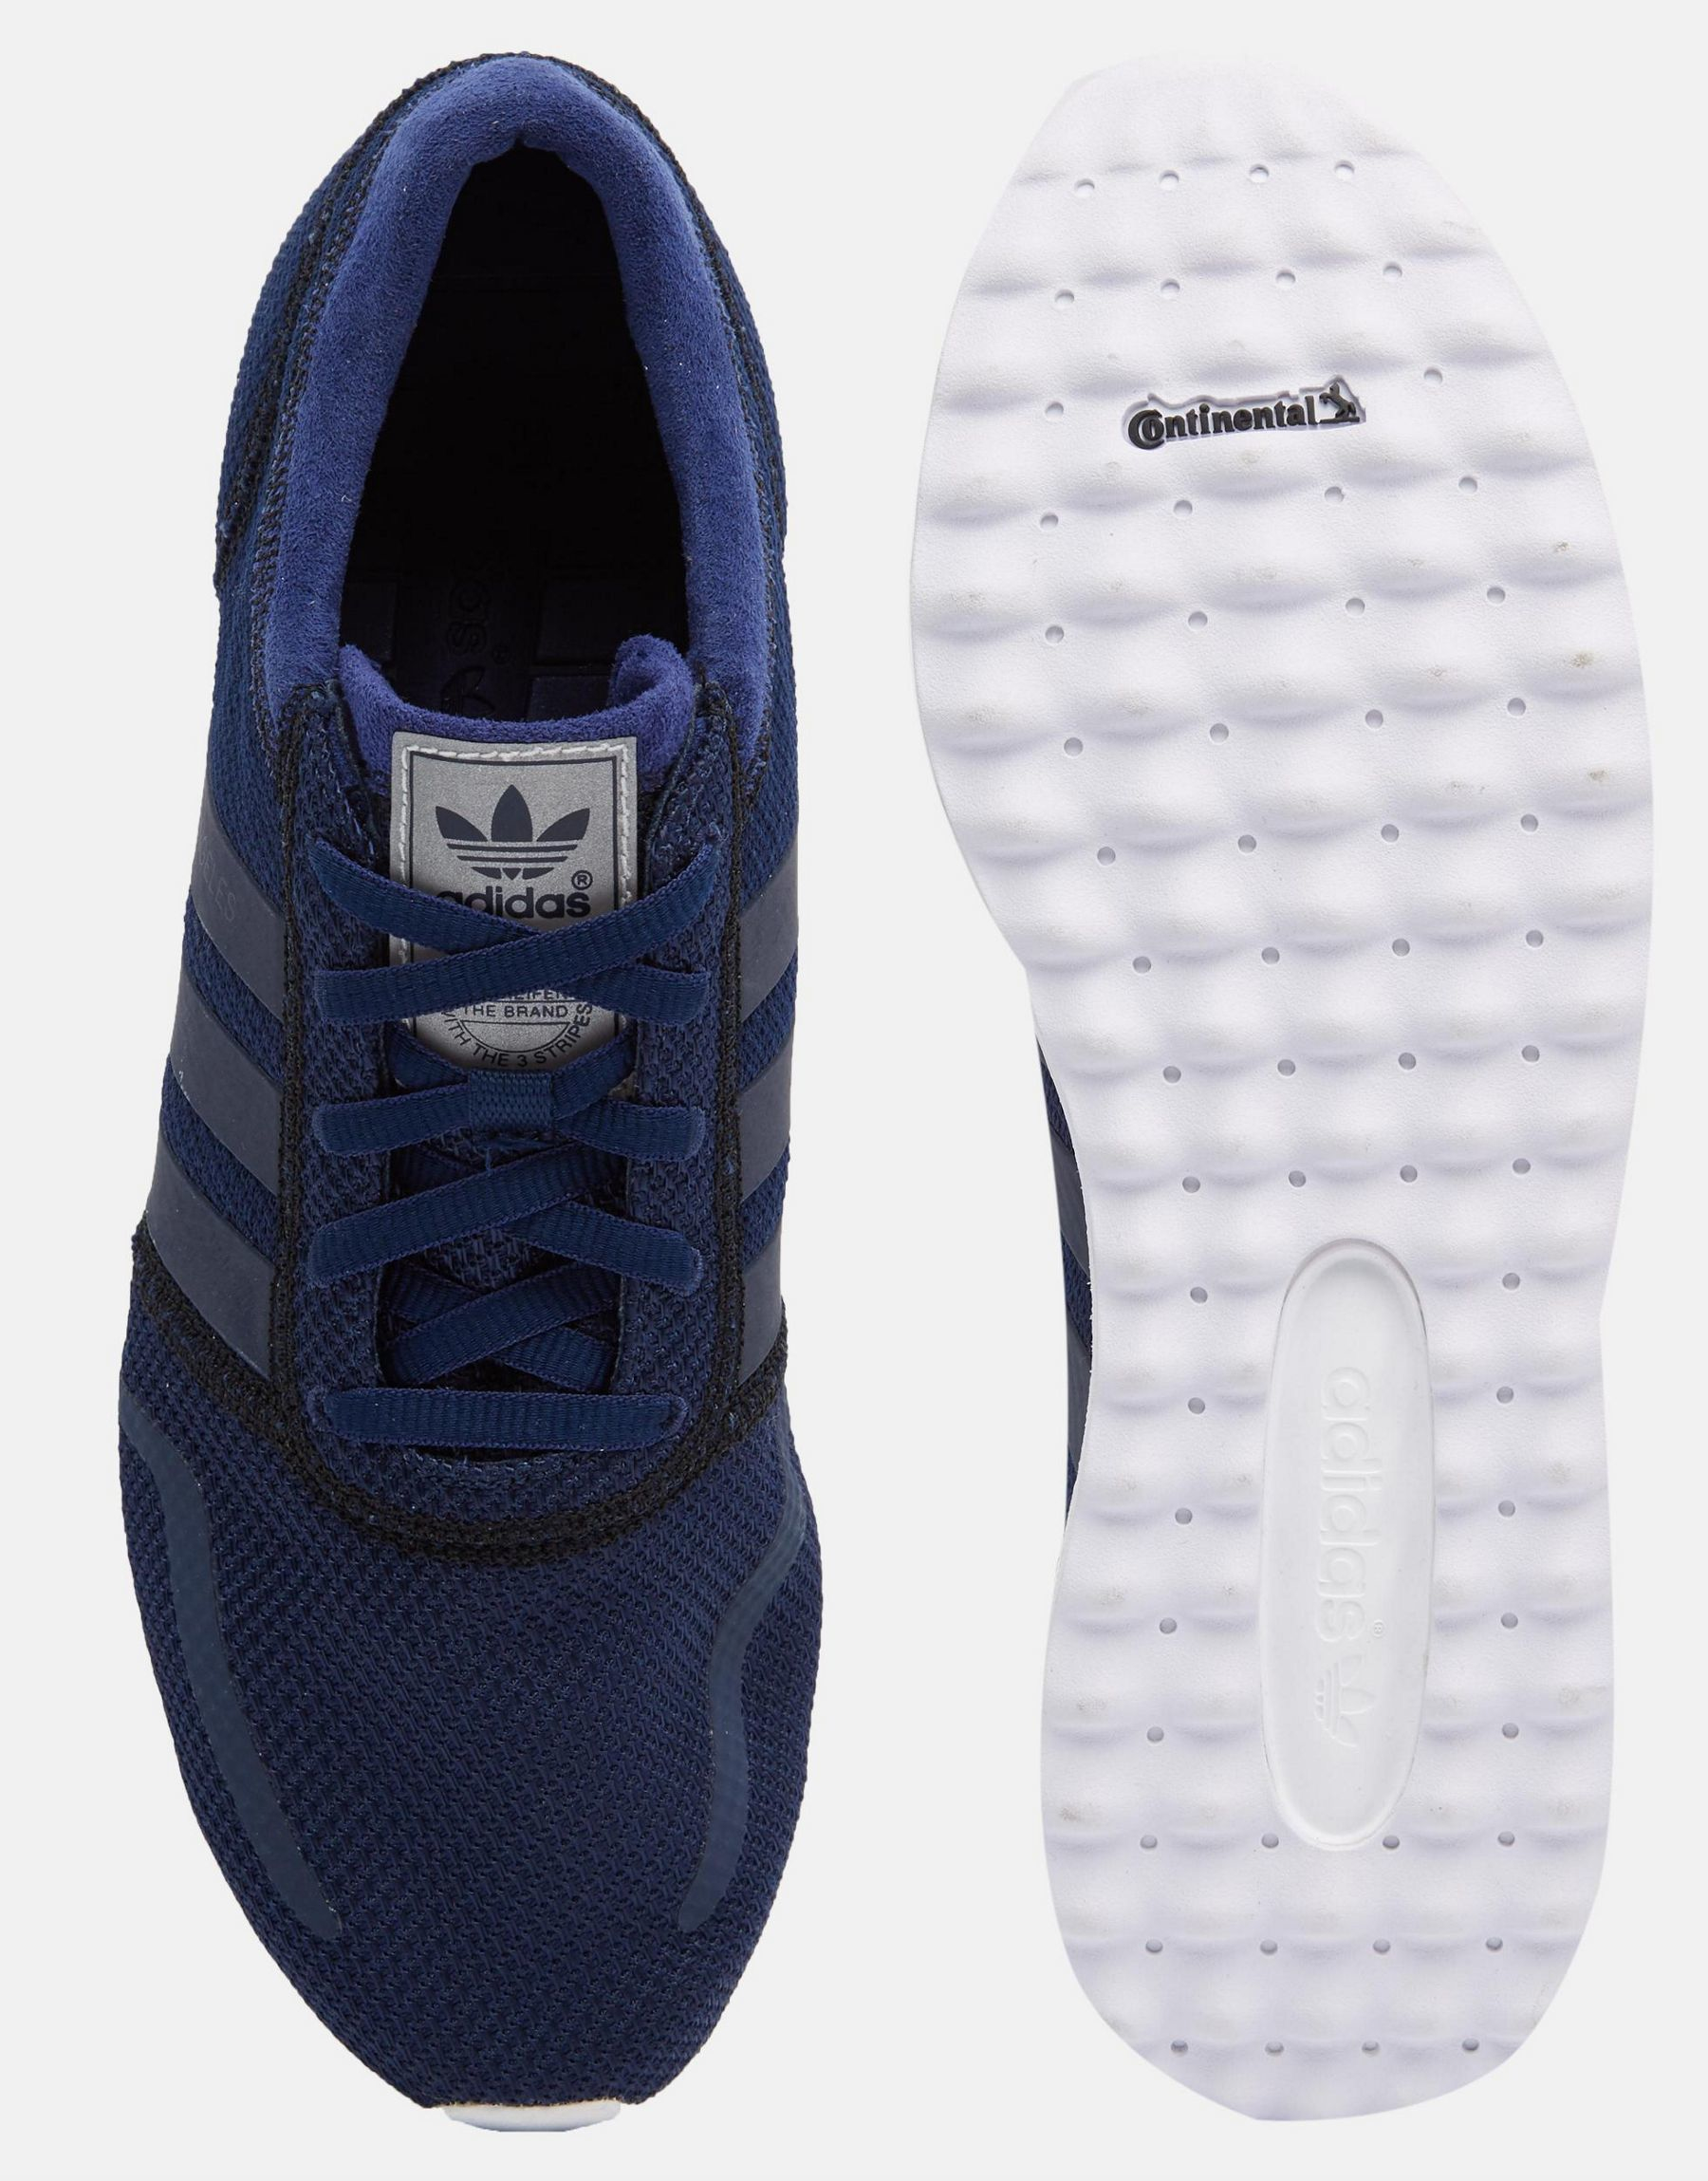 negro importante fractura  adidas Originals Los Angeles Sneakers S79020 in Blue for Men - Lyst